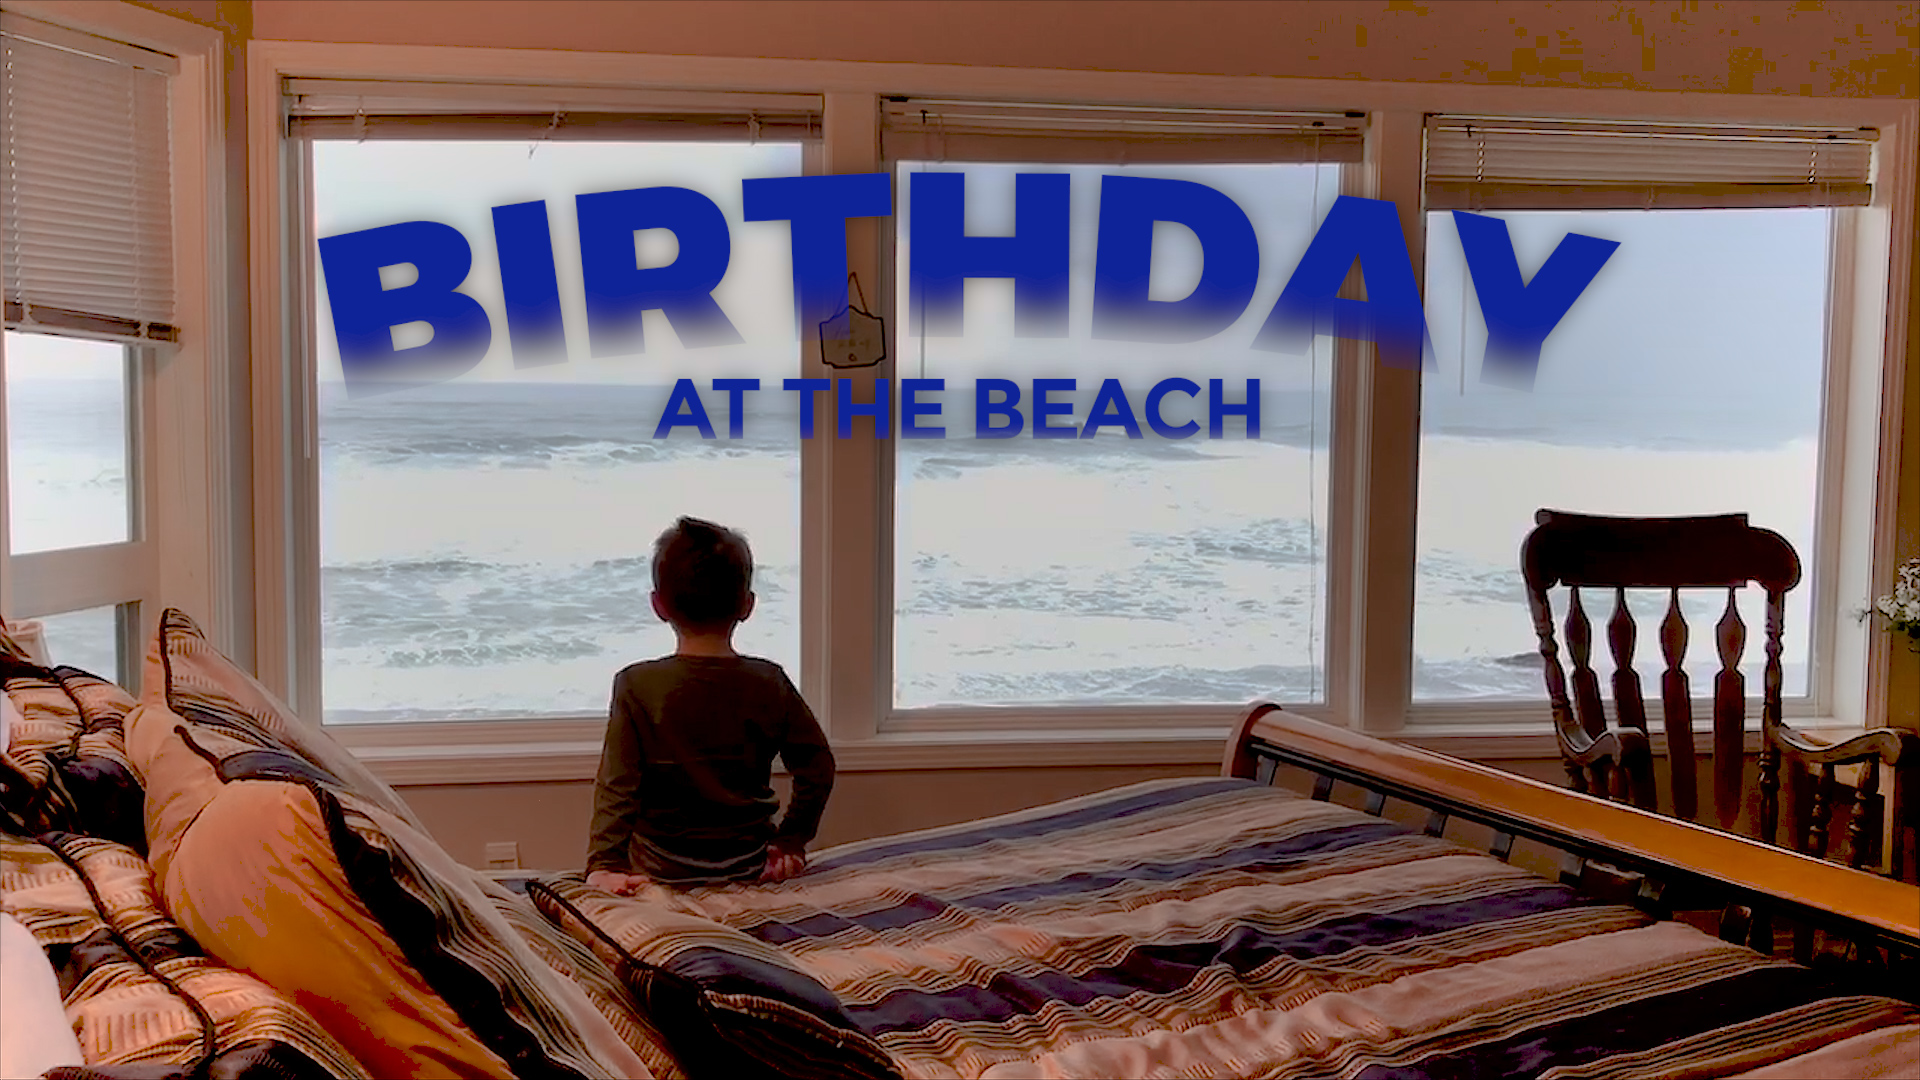 A Birthday Beach Party at Depoe Bay, Oregon